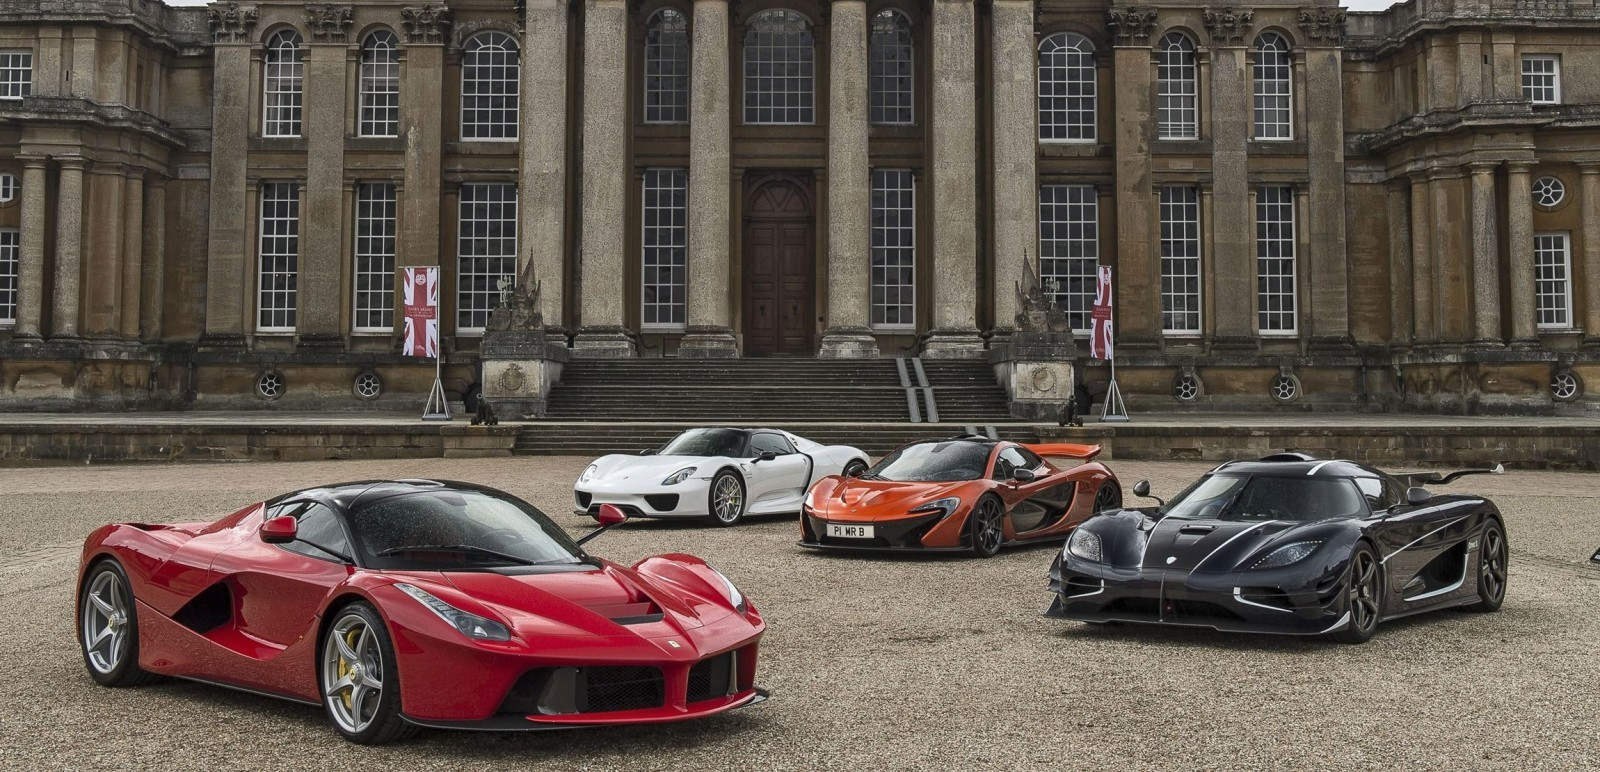 2015 Salon Prive Preview 88